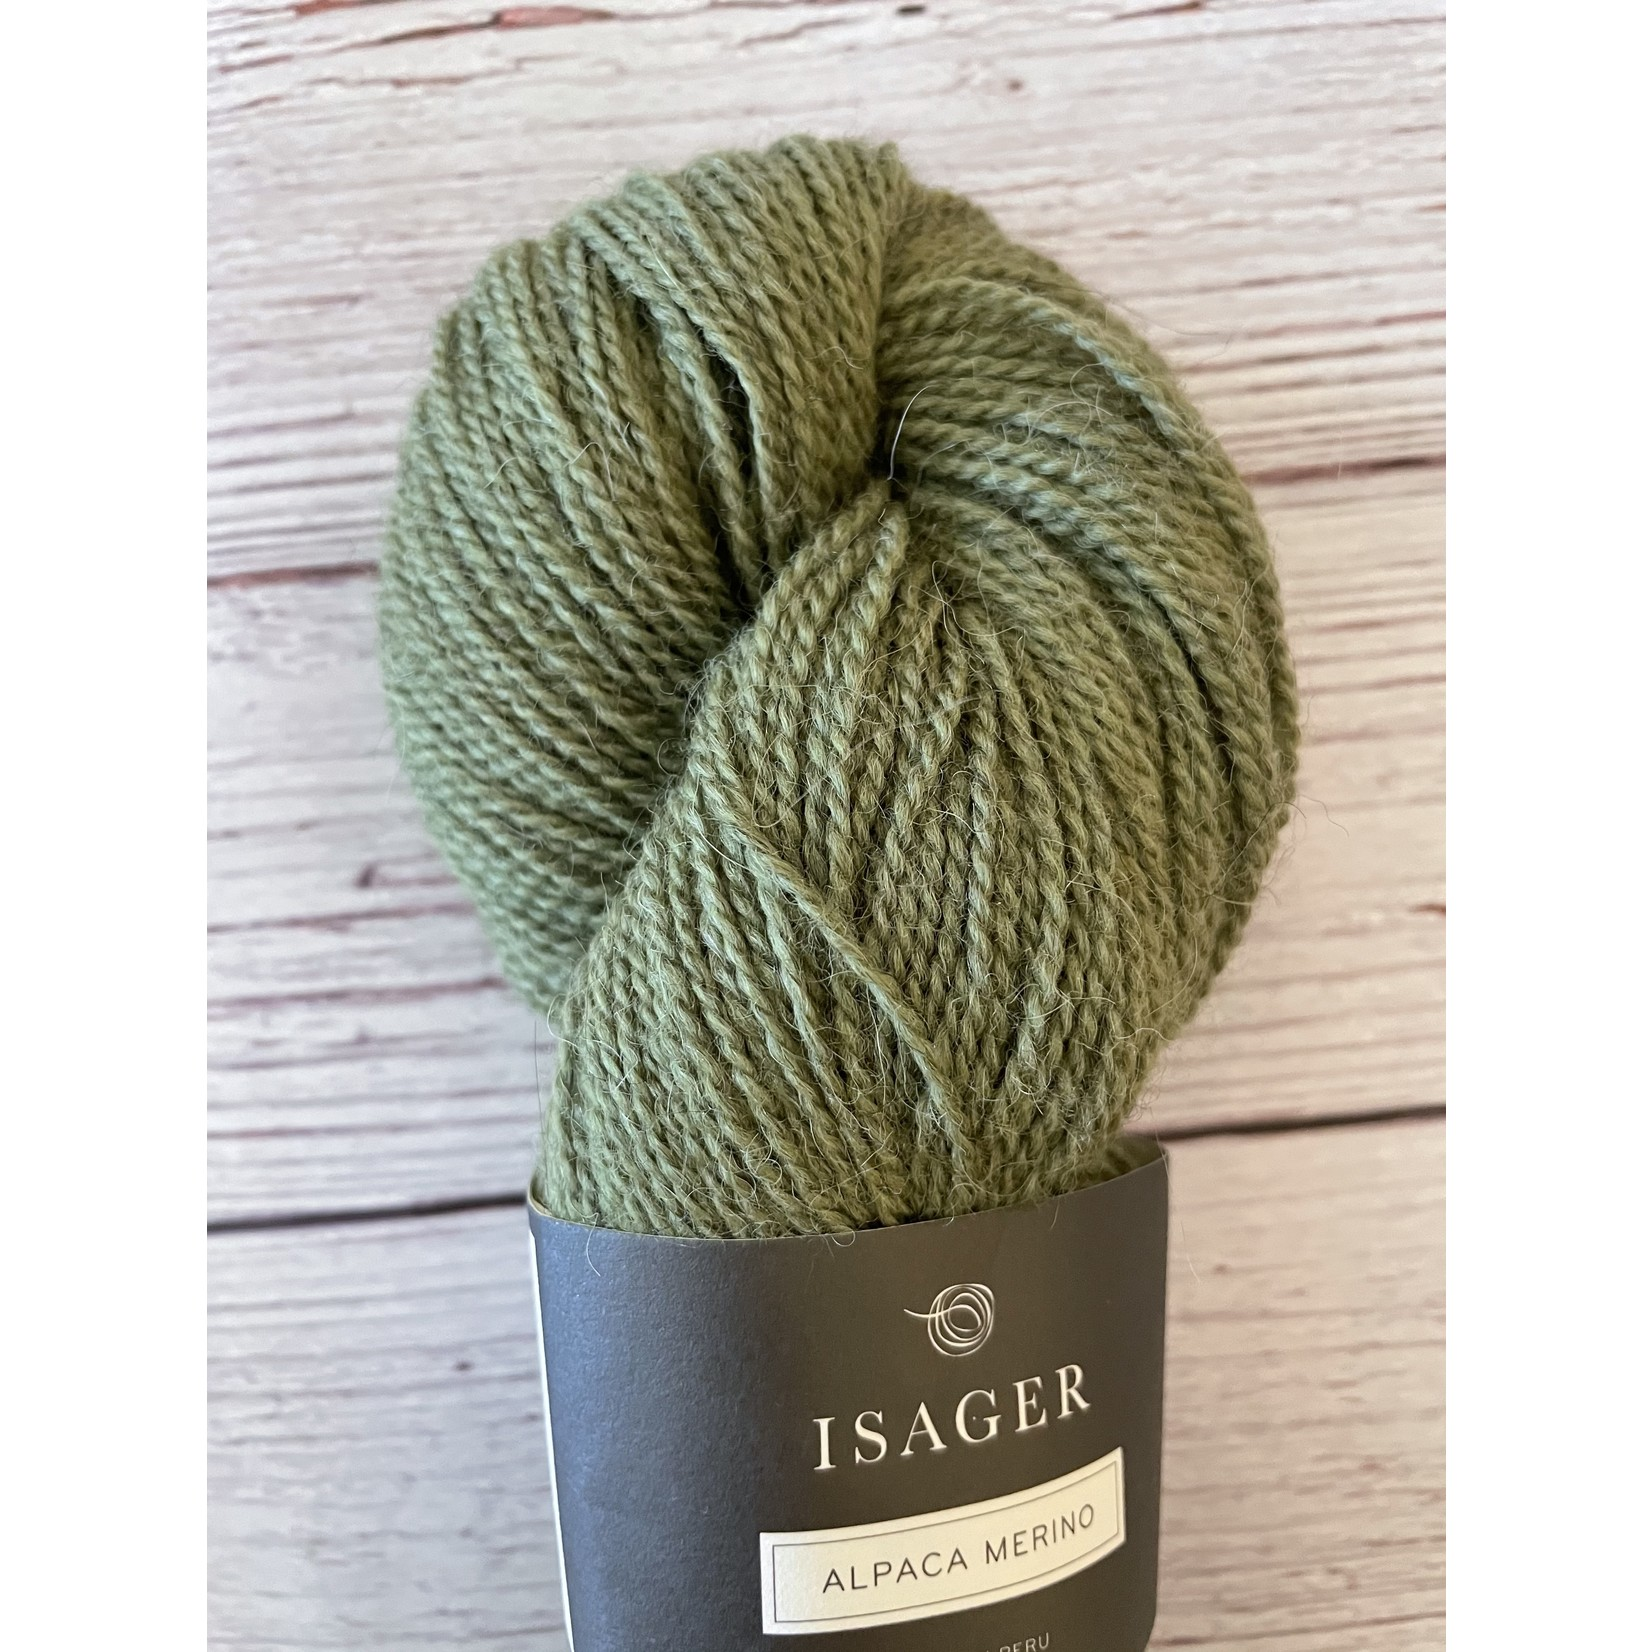 Tutto Isager Isager Alpaca 2, A2 43, Med. Green